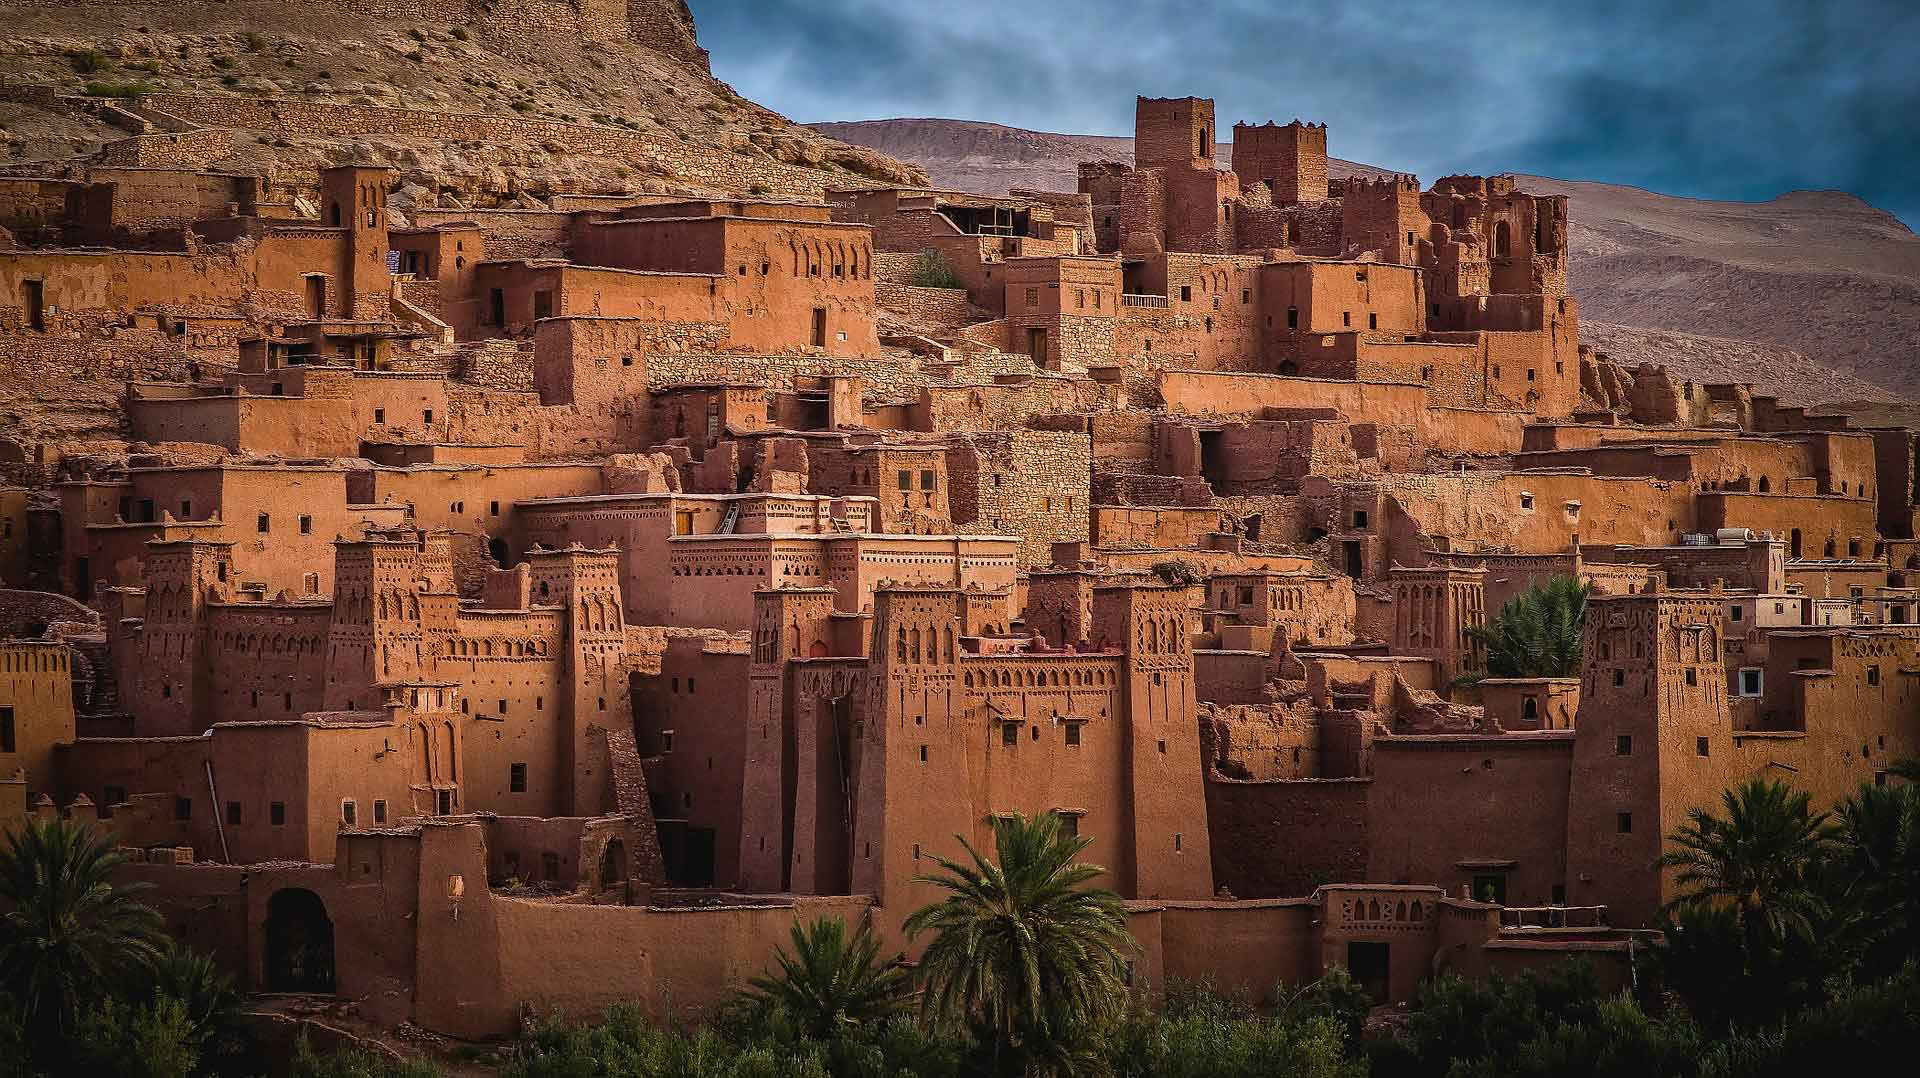 Ait Ben Haddou Day Trip - One Day Tour From Marrakech